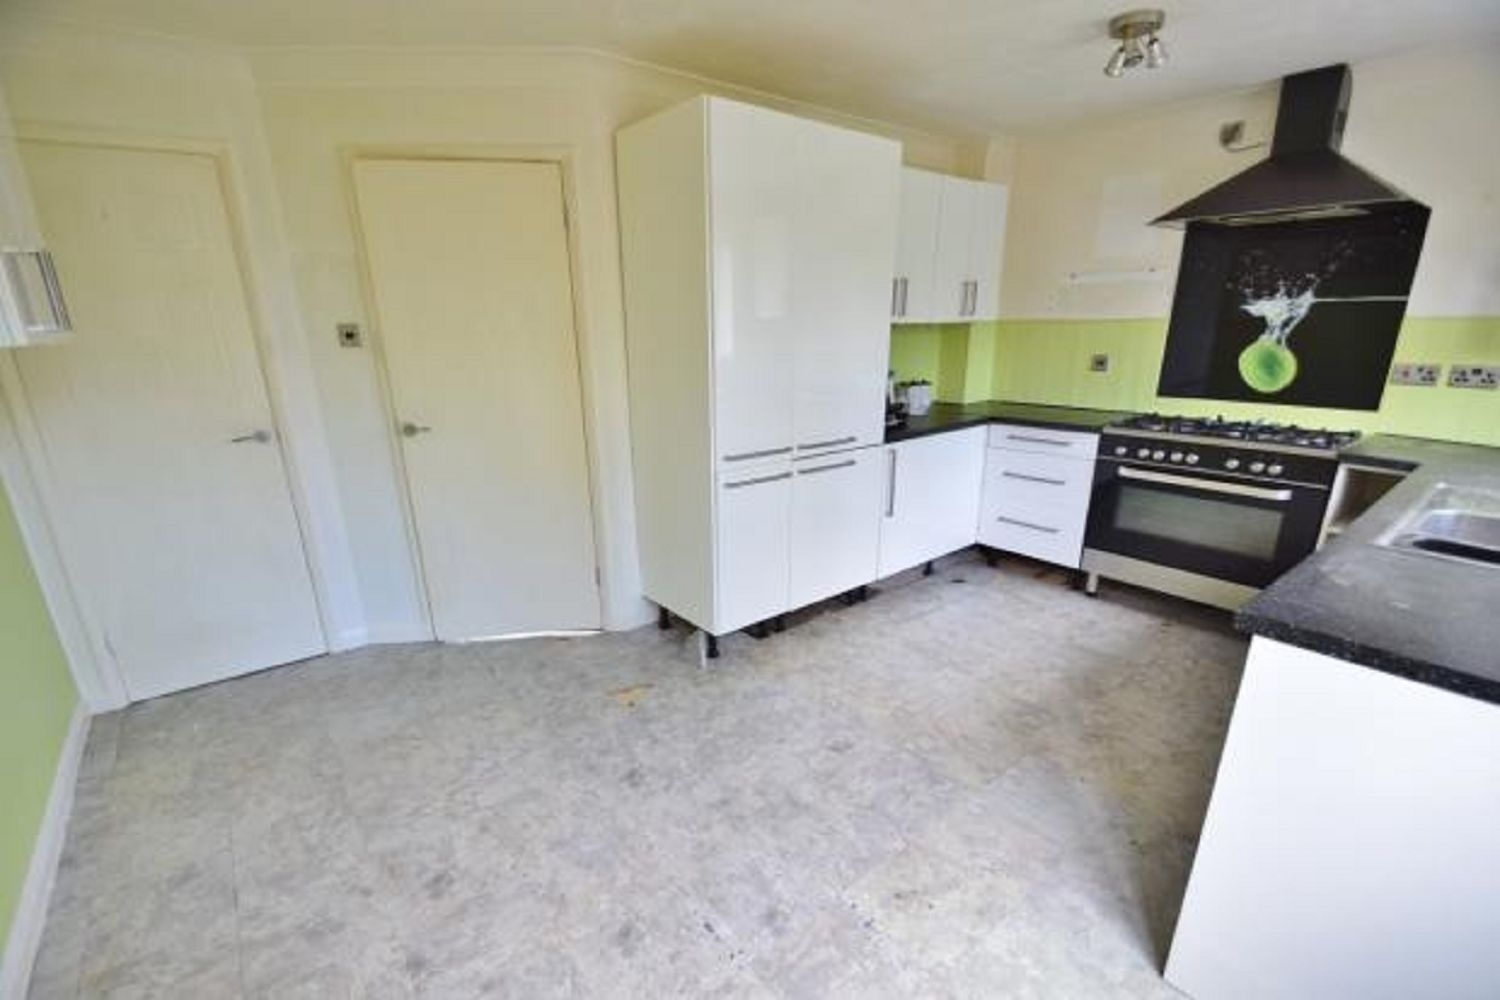 Cloverbank, Kings Worthy, Winchester, SO23 7TP